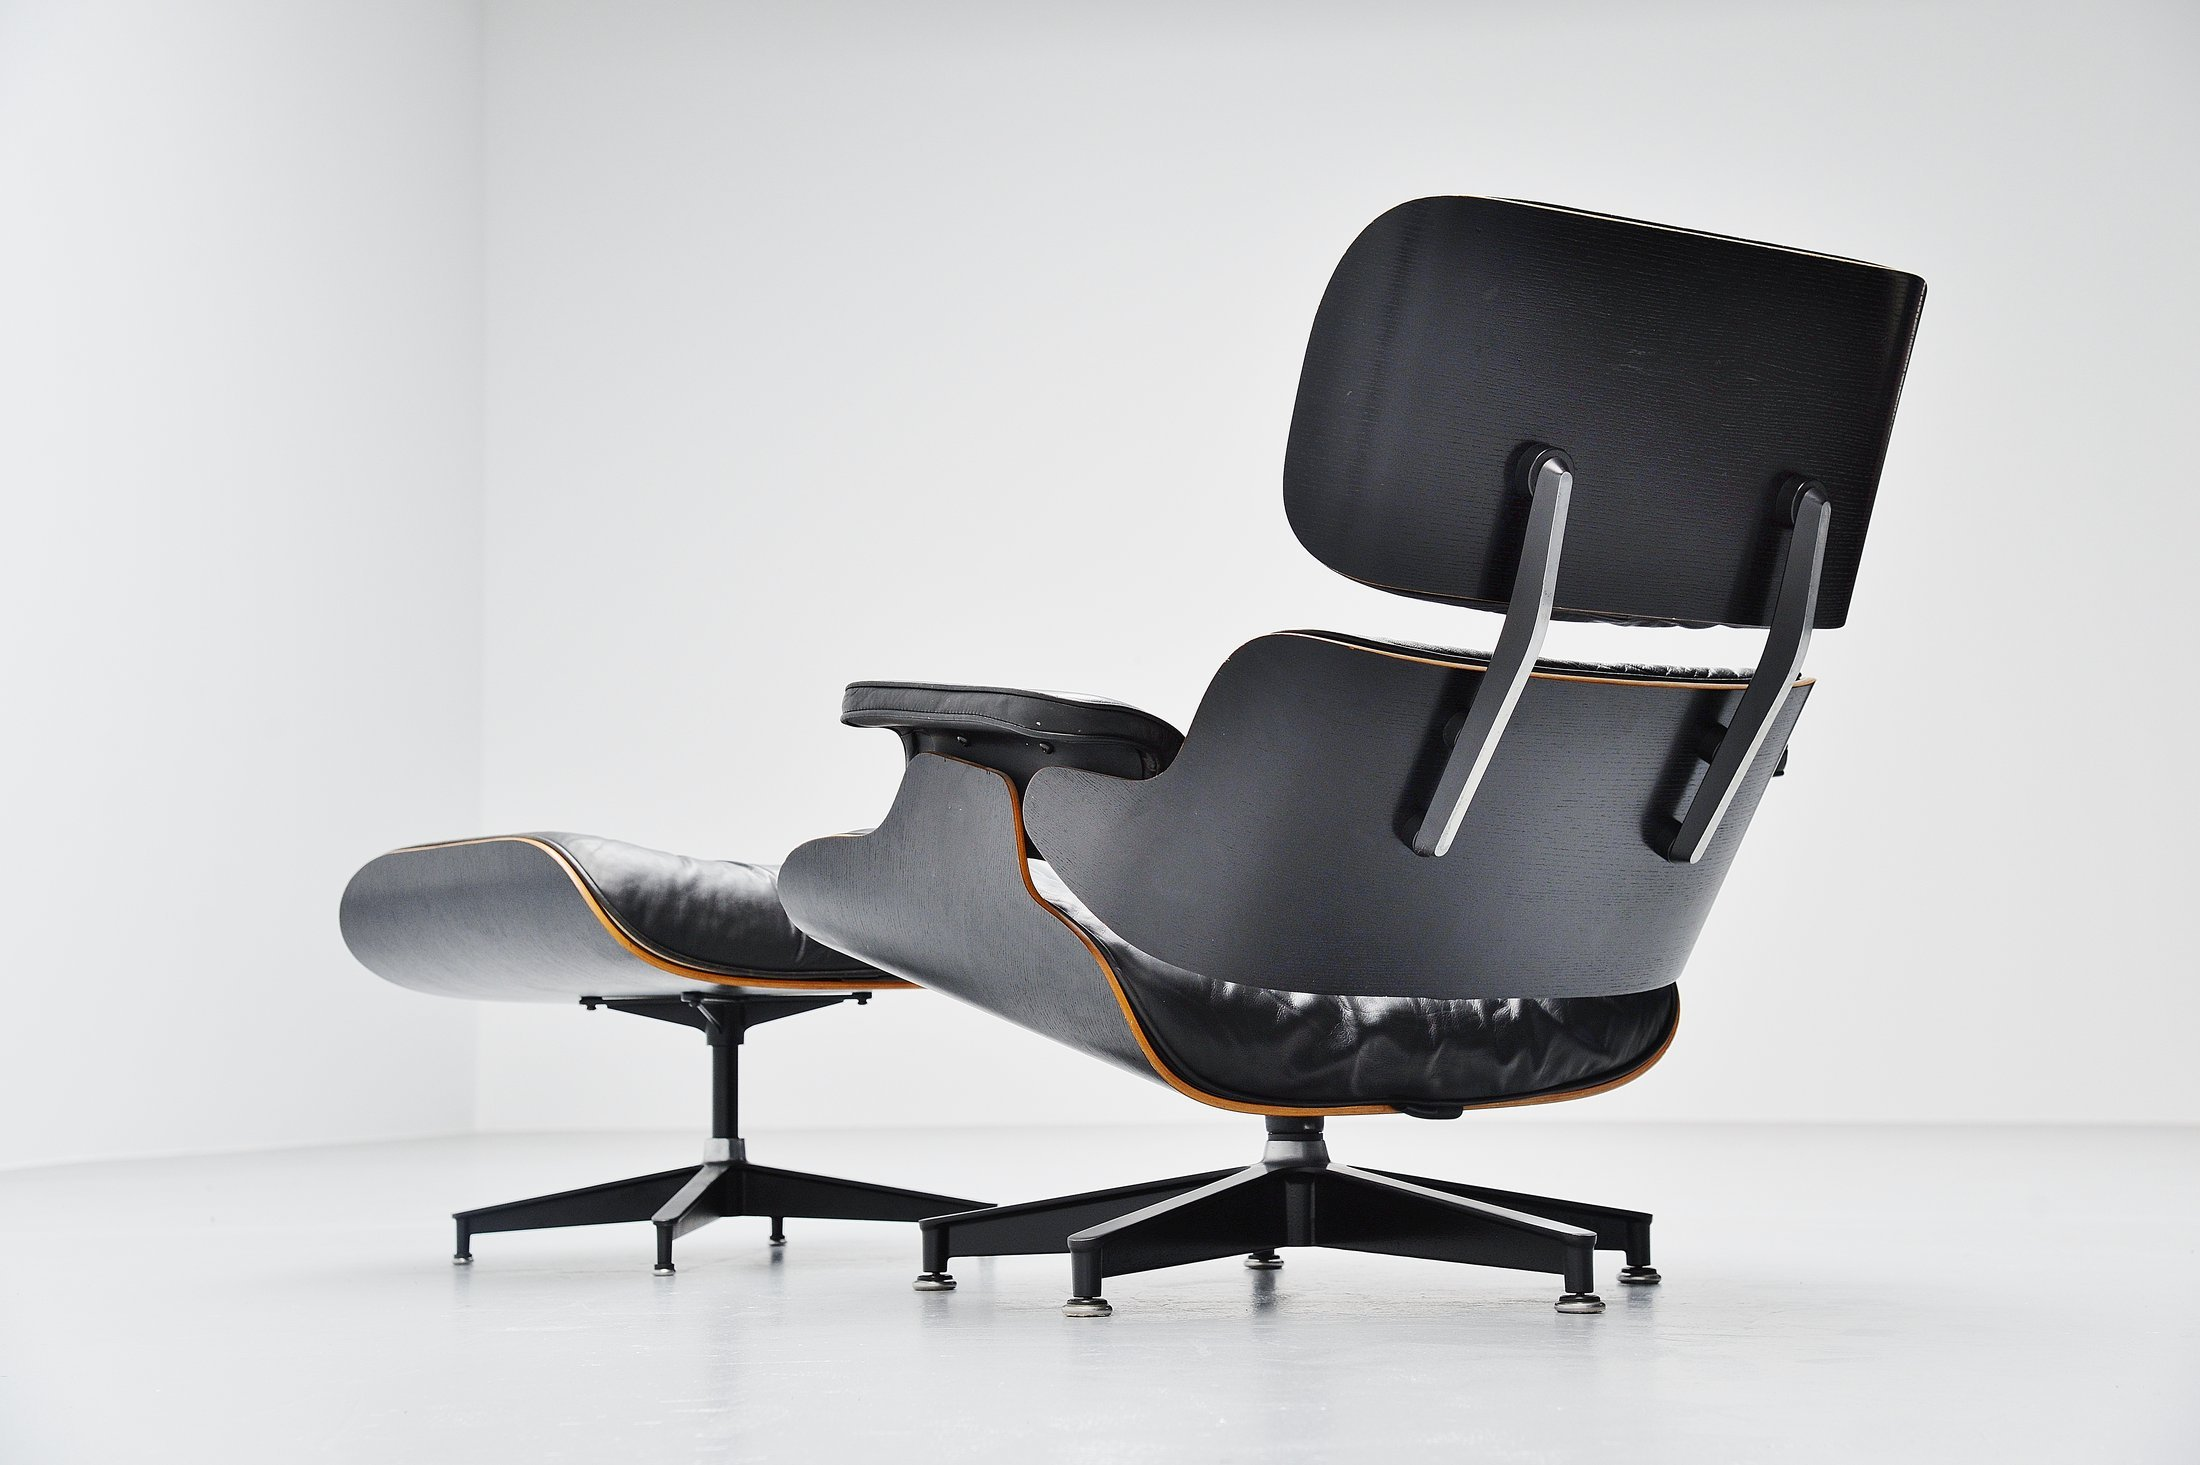 Tremendous Charles And Ray Eames Lounge Chair Herman Miller Usa 1956 Alphanode Cool Chair Designs And Ideas Alphanodeonline